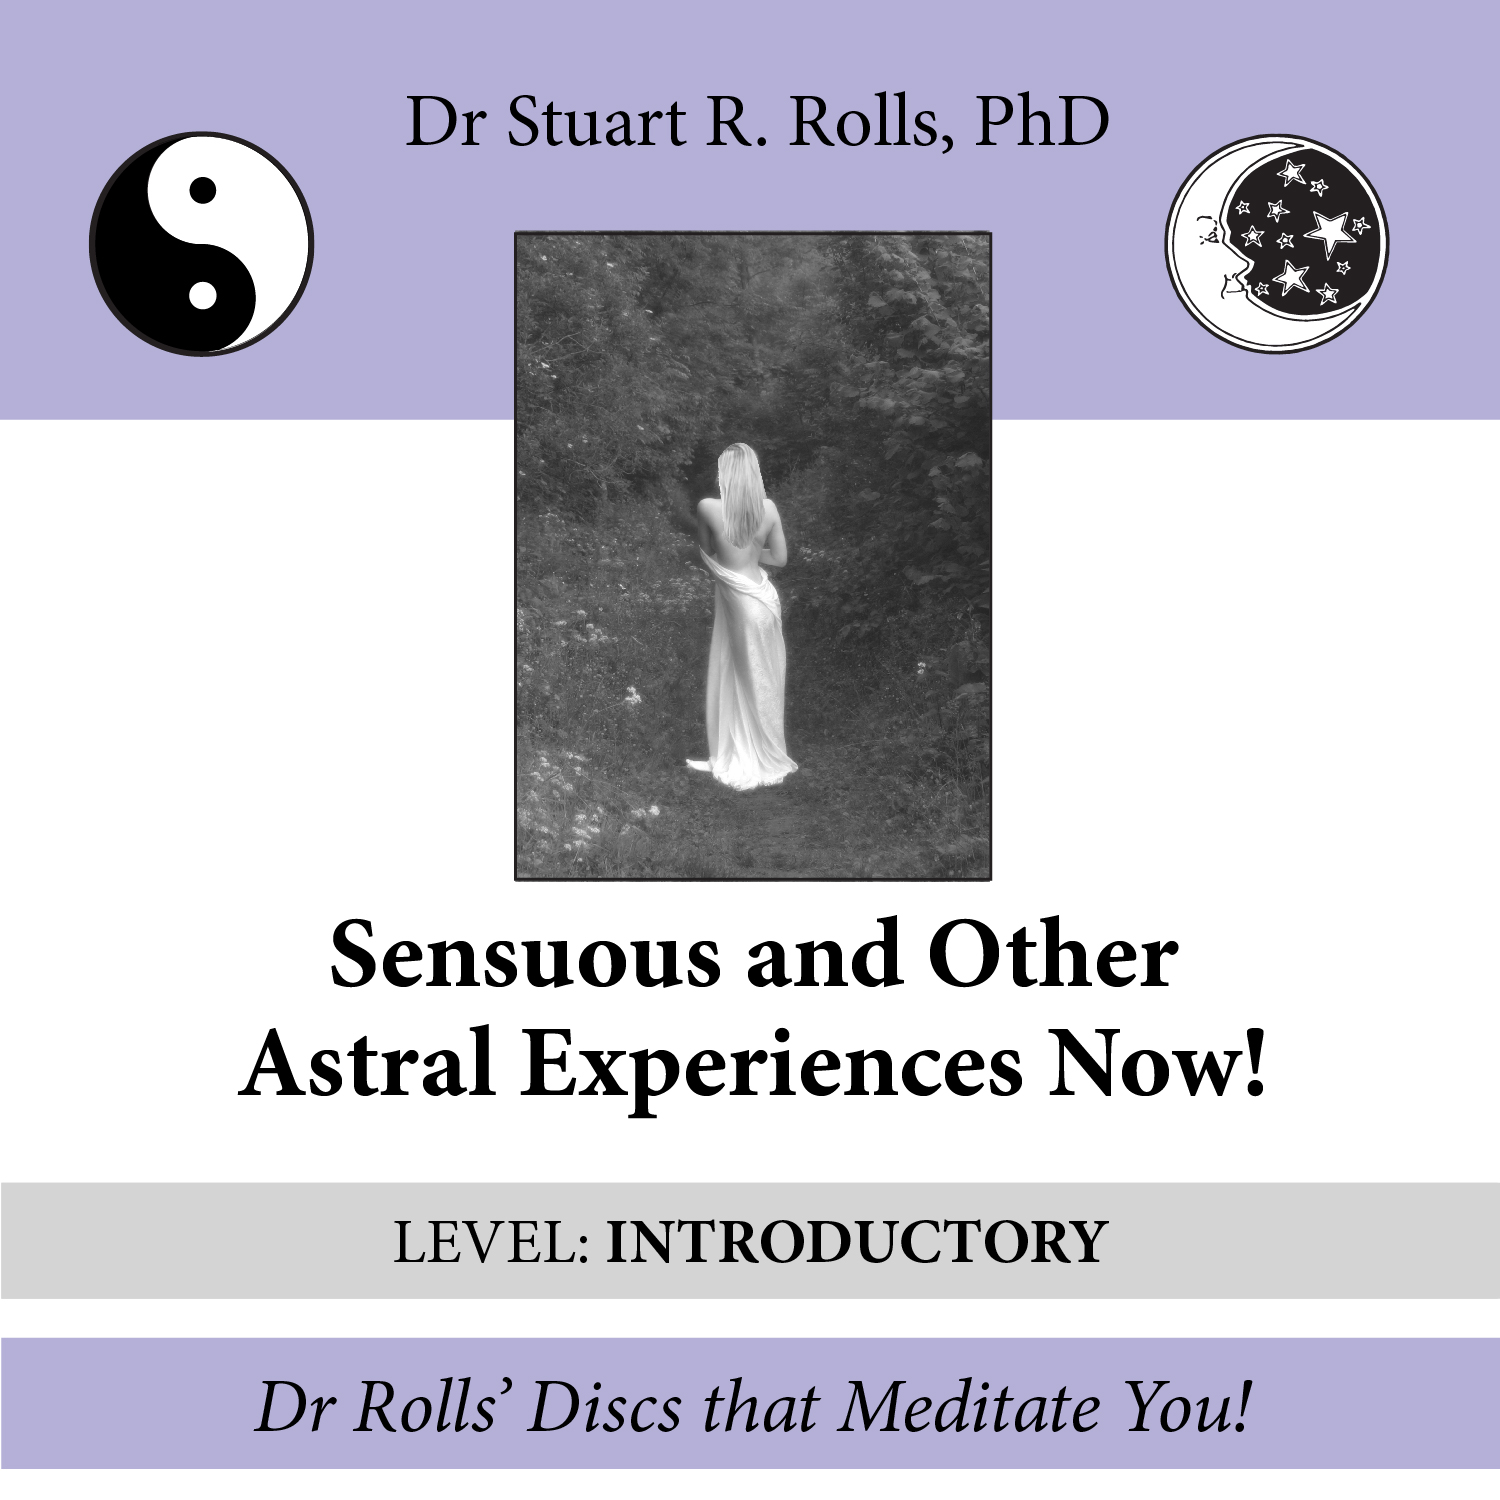 Sensuous and Other Astral Experiences Now! (Introductory Level)